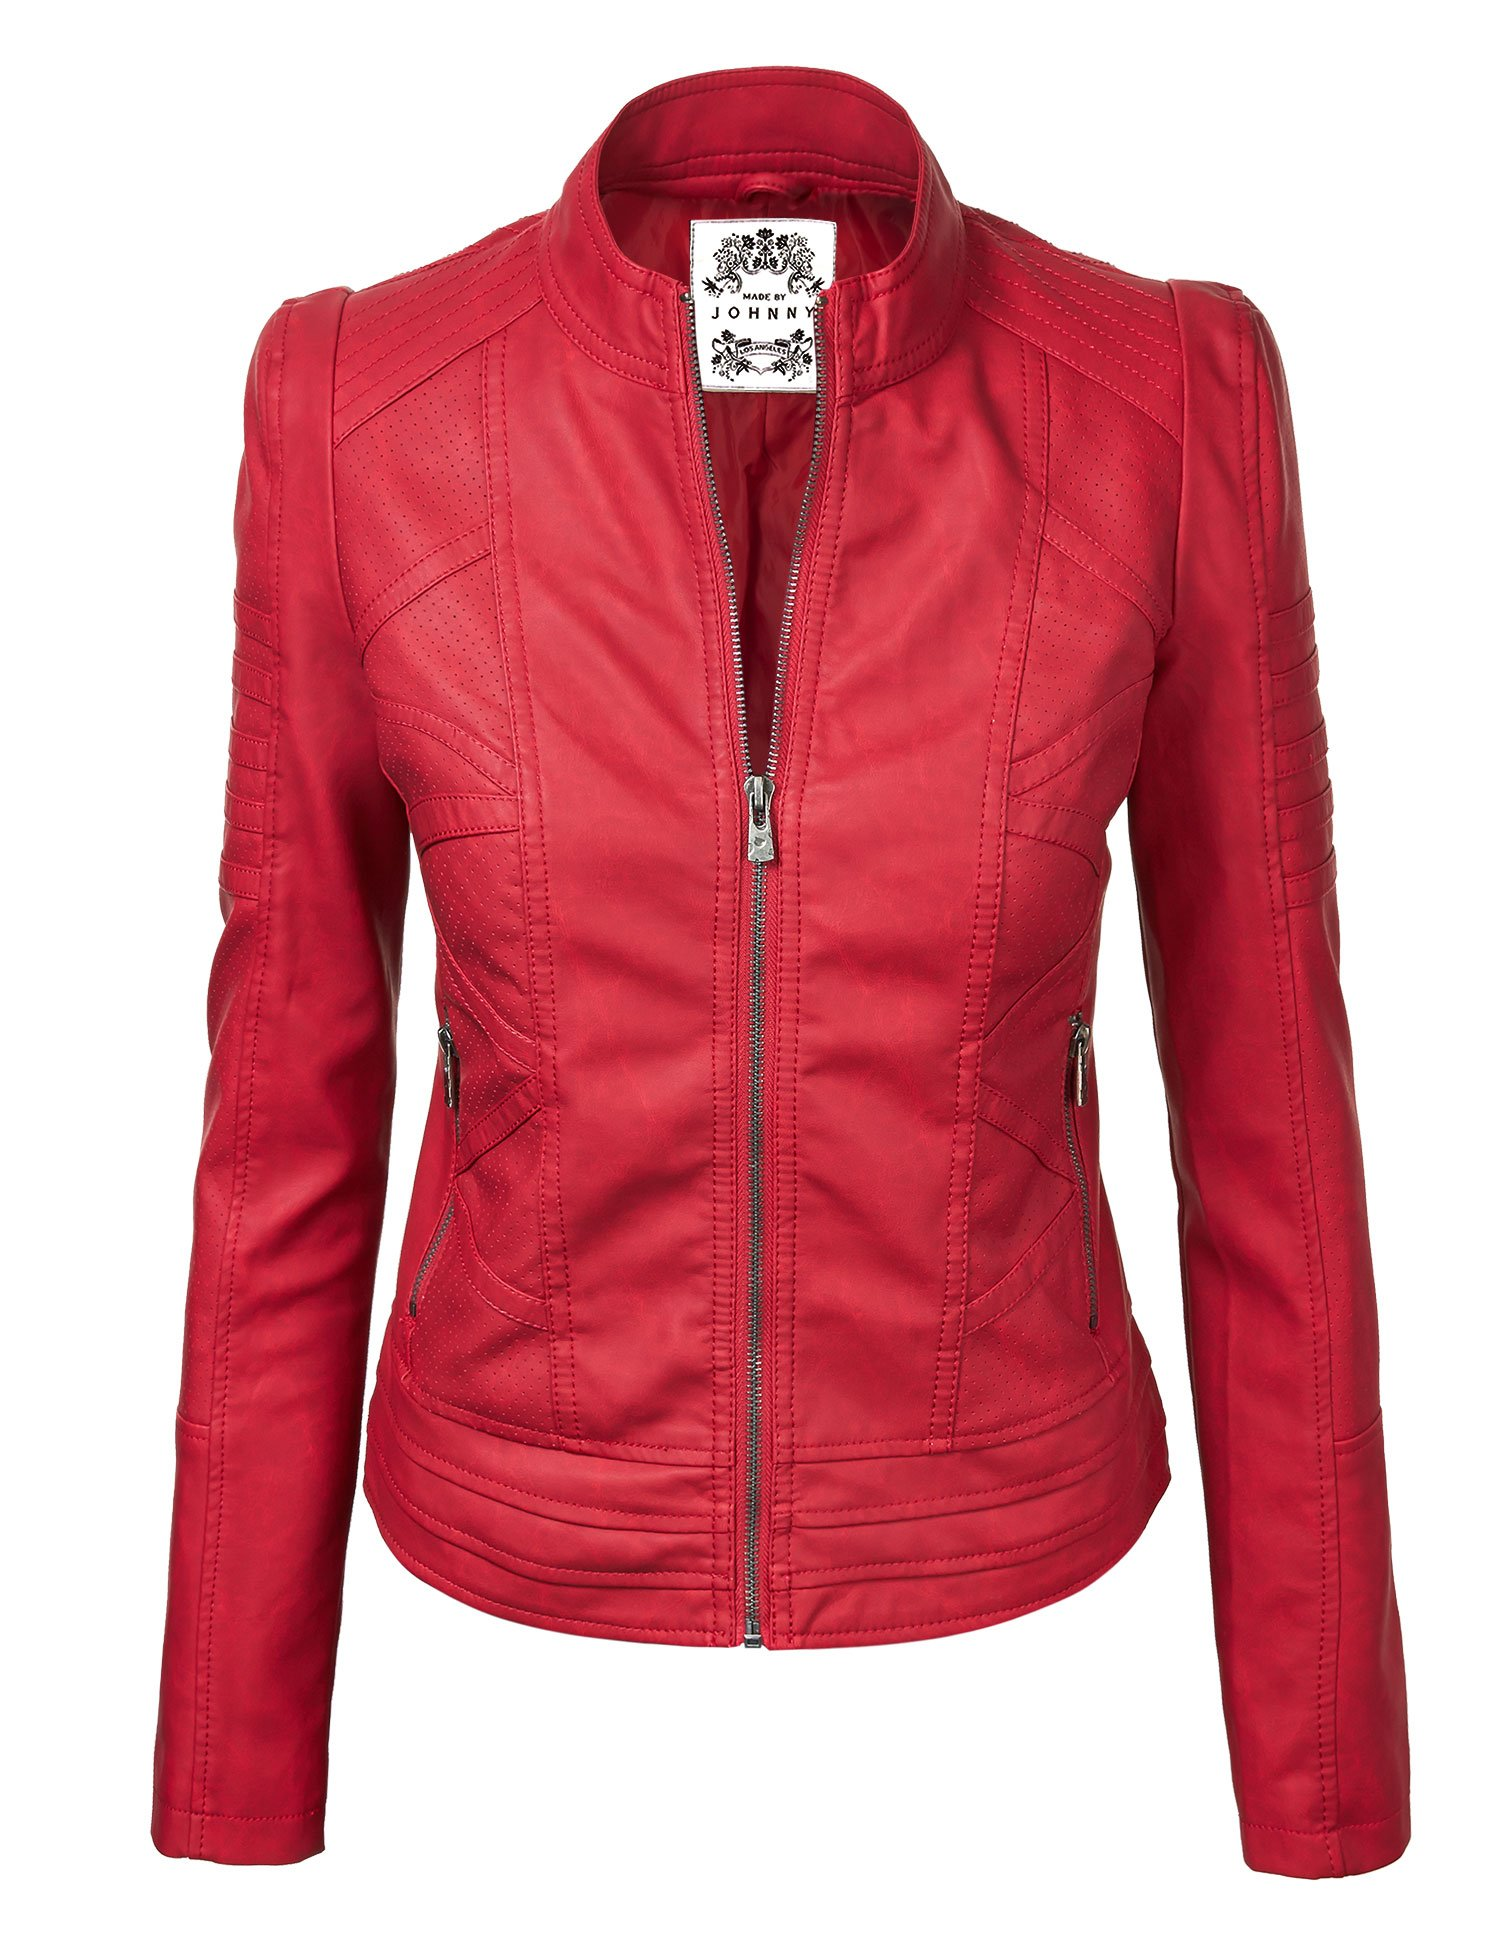 WJC746 Womens Vegan Leather Motorcycle Jacket M RED